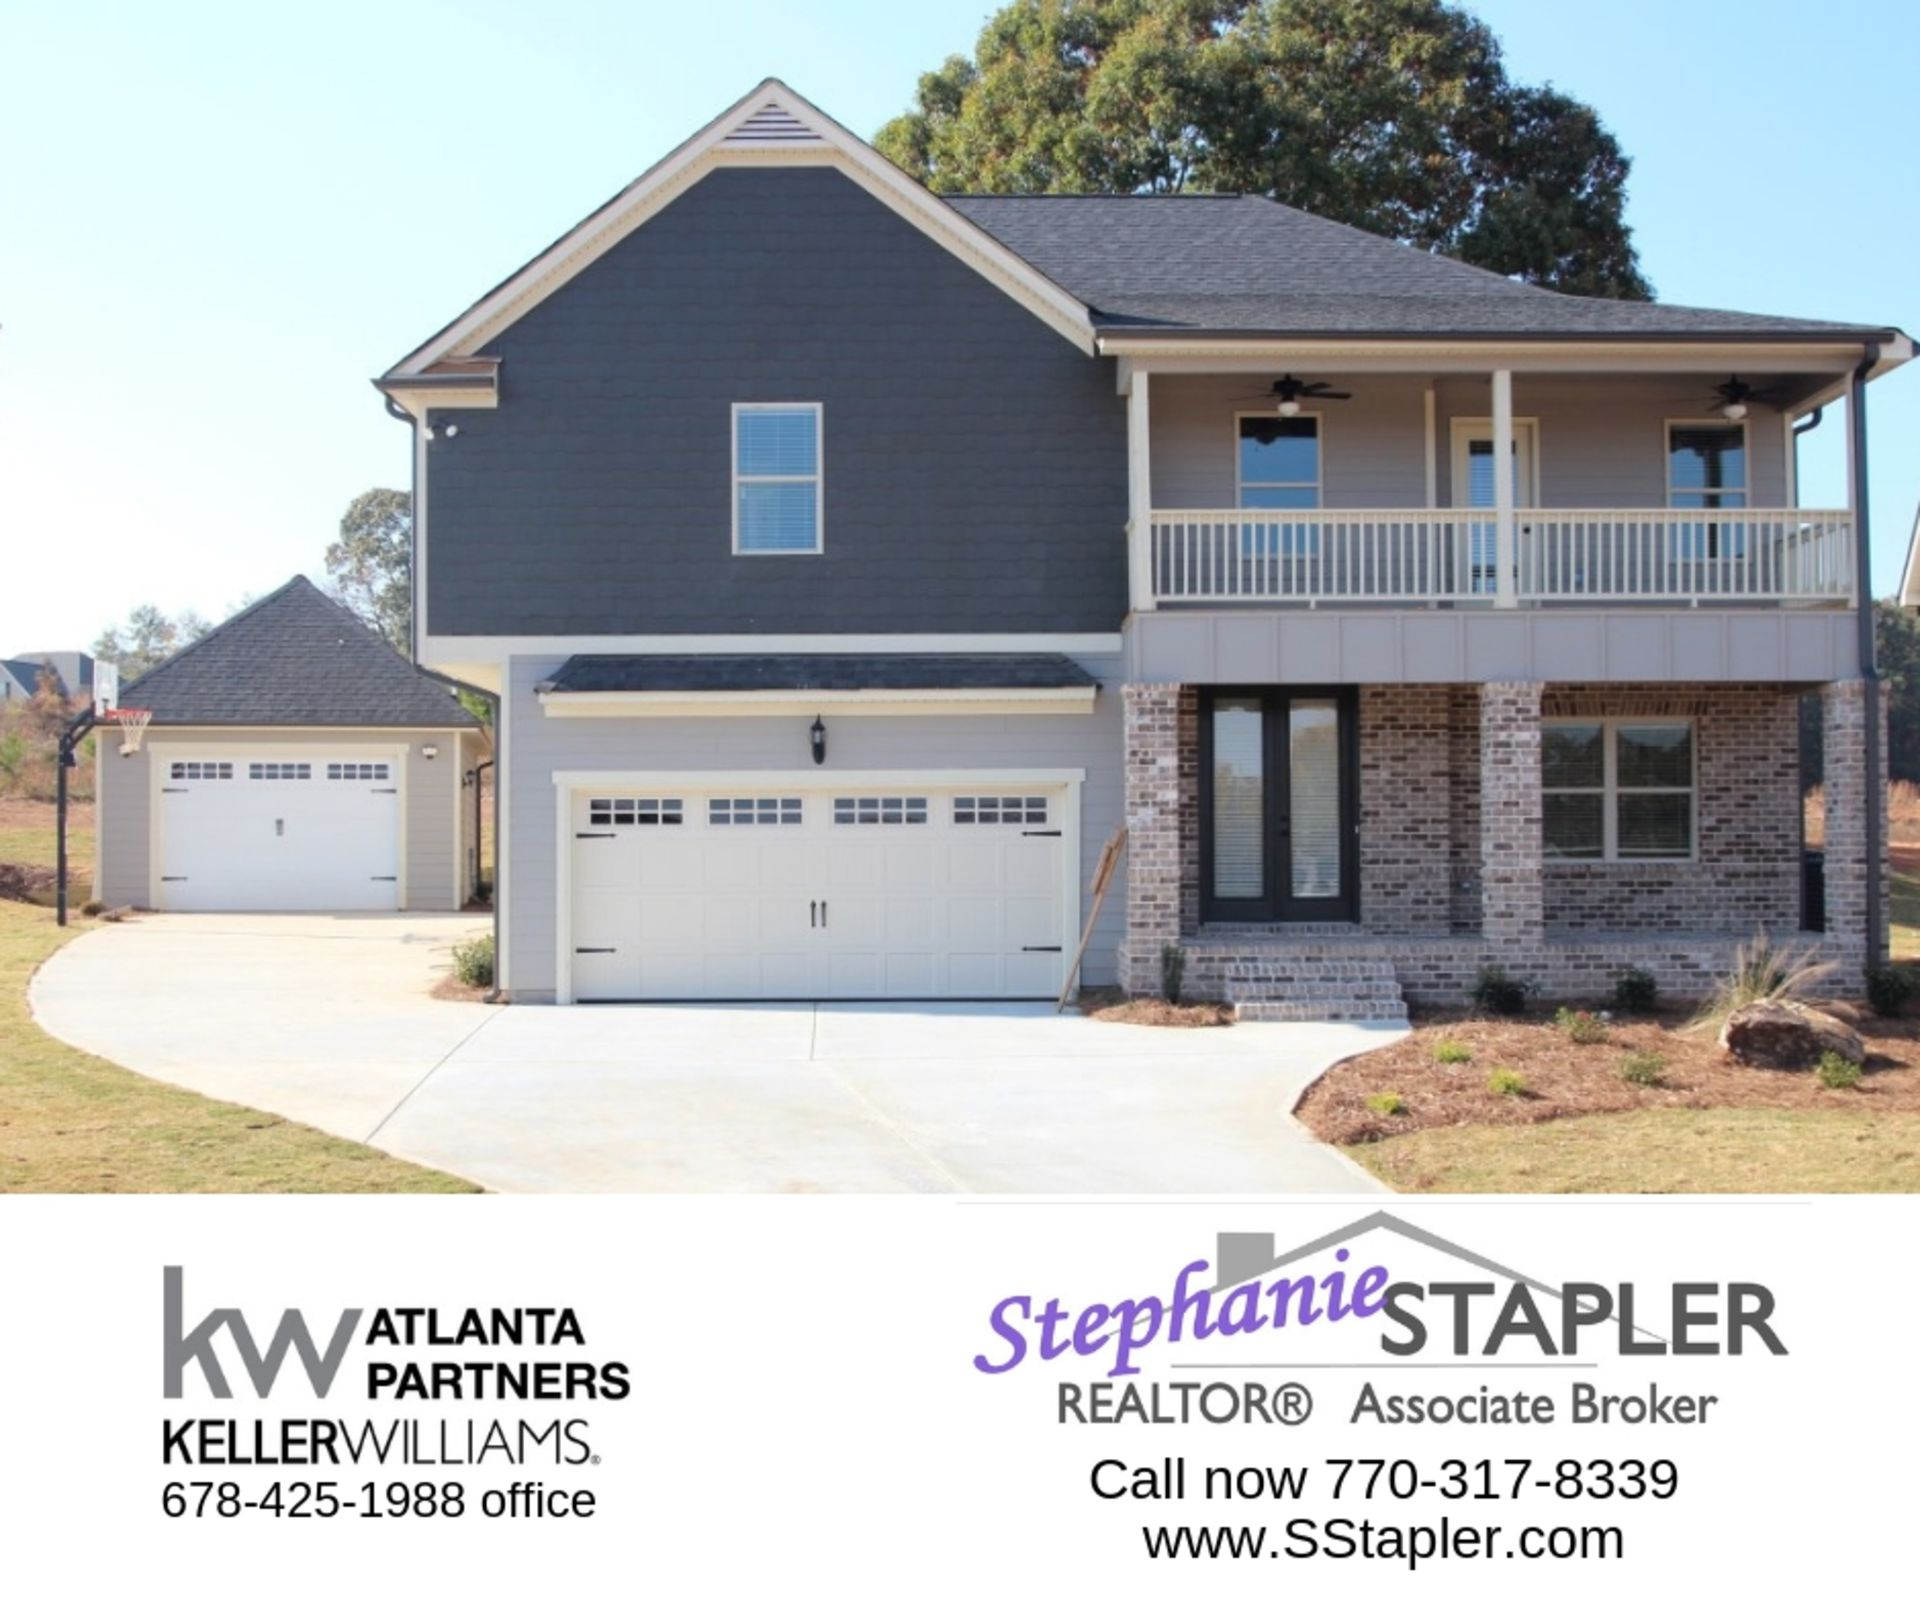 HOME FOR SALE 4bd/ 3ba, Double Front Porches, Man Cave and More!